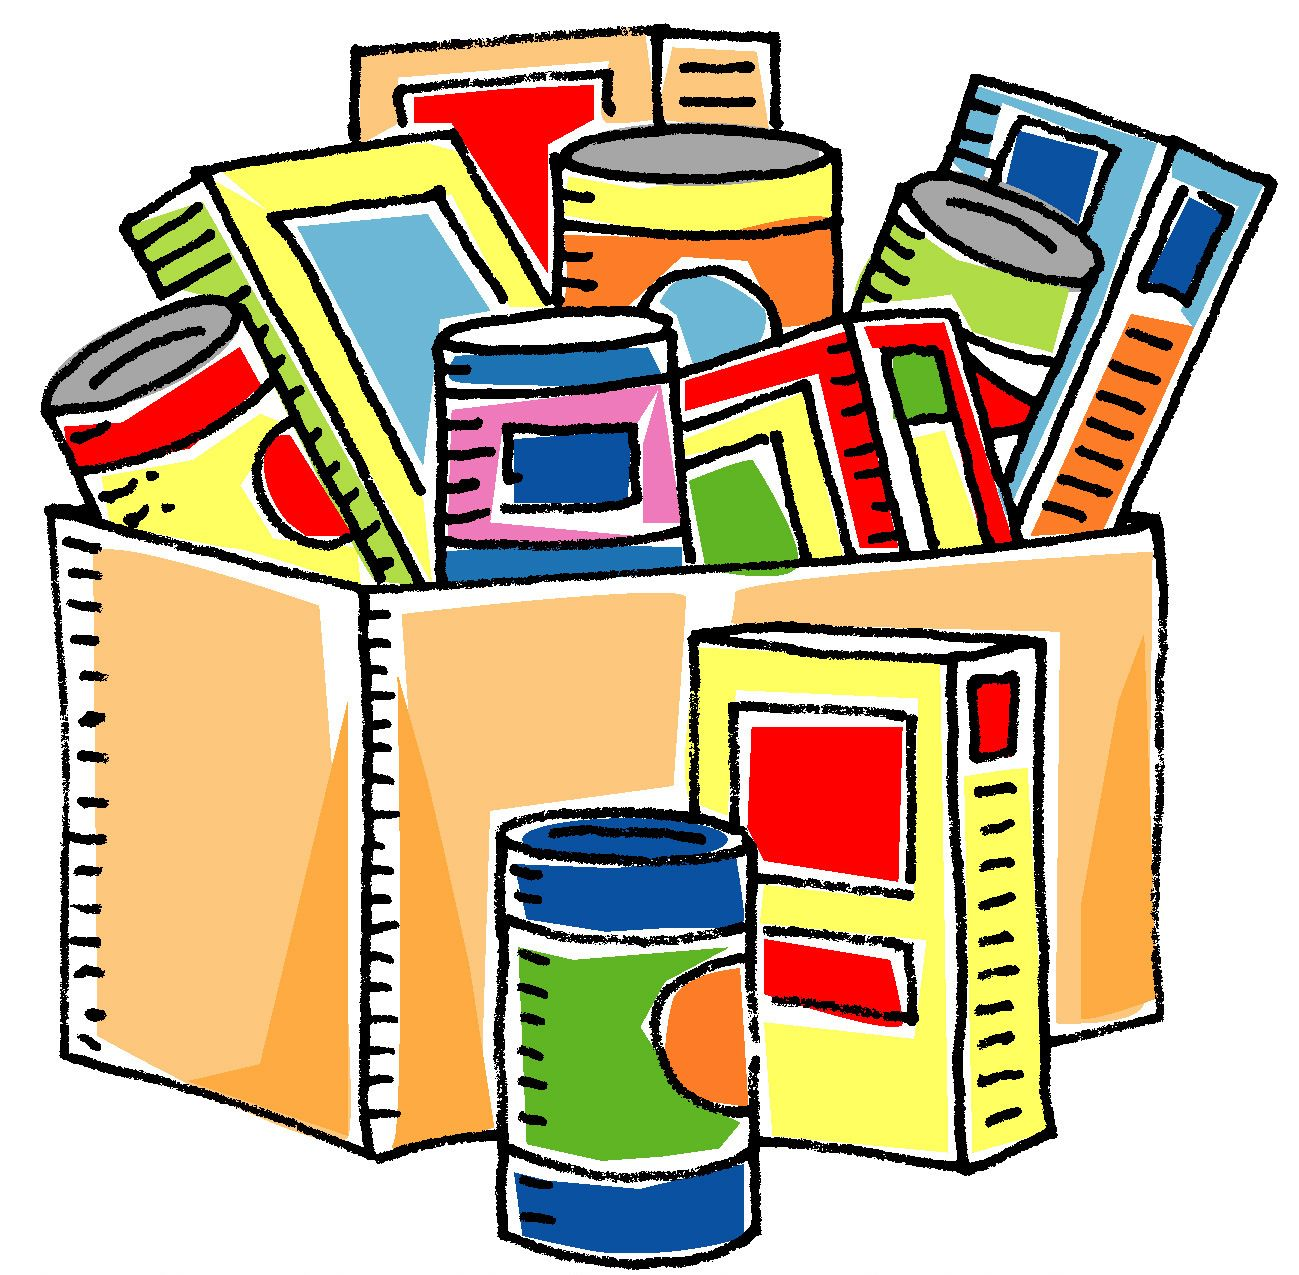 hight resolution of church food pantry clip art bing images